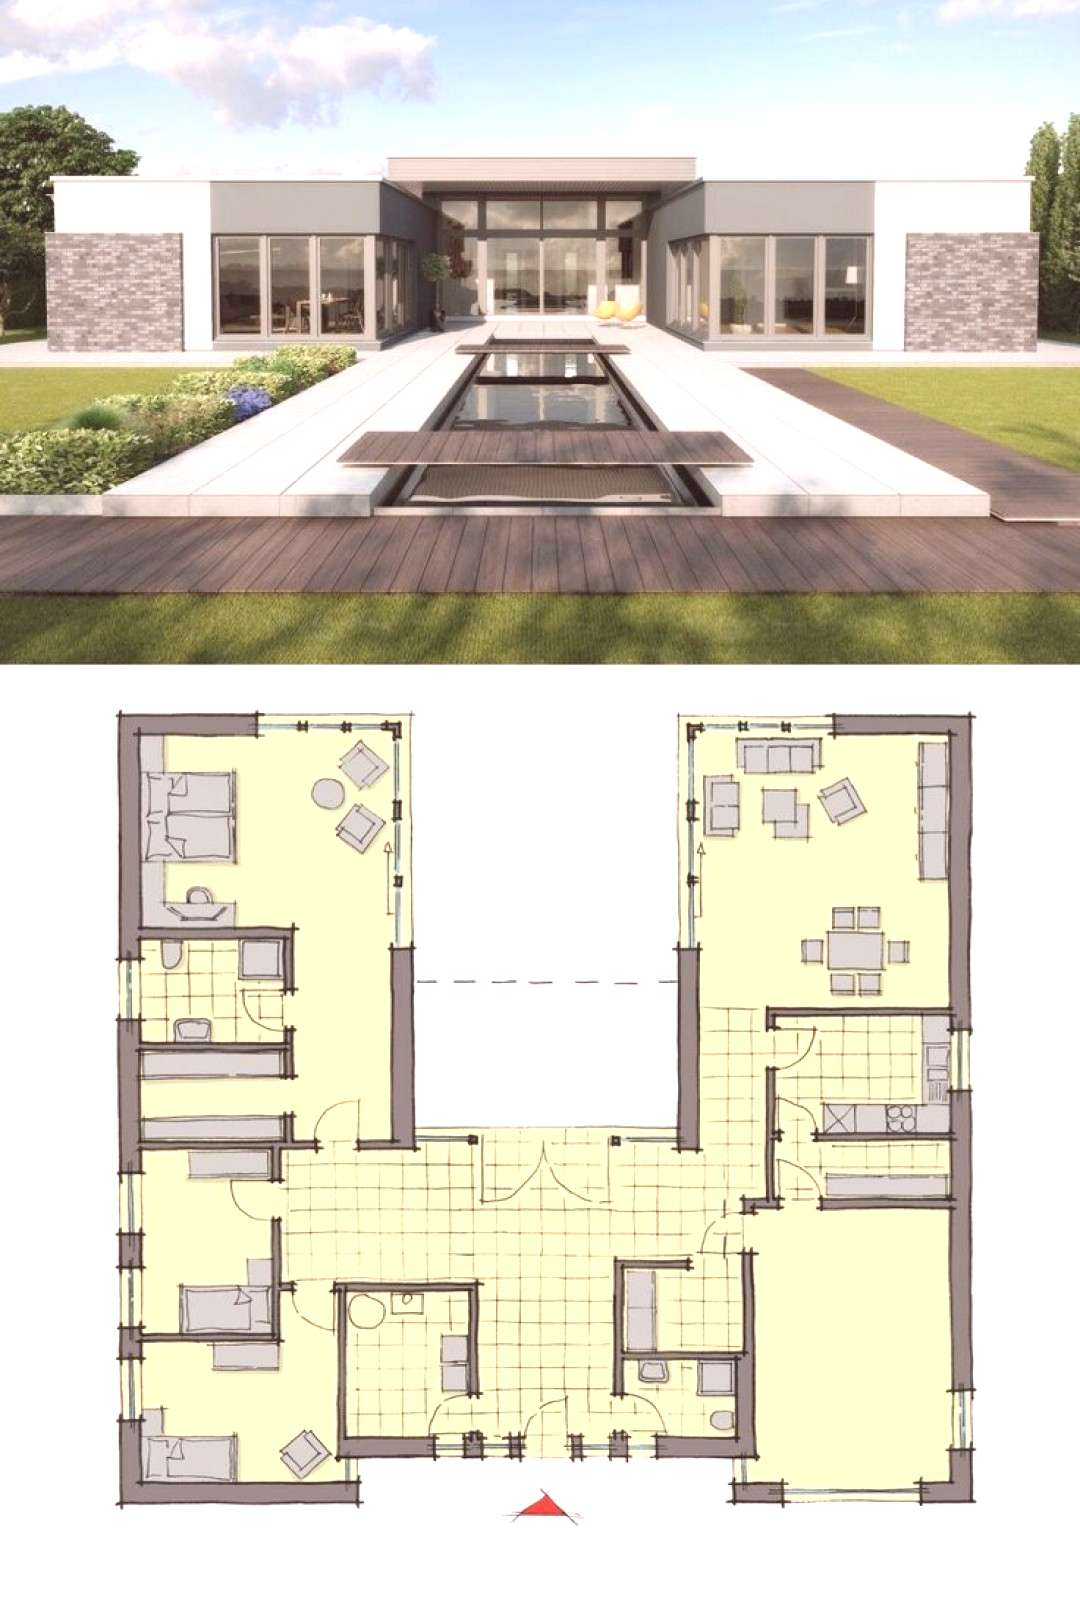 -  Bungalow House Design Modern European Contemporary Architecture with Pool Terrace amp Patio – H